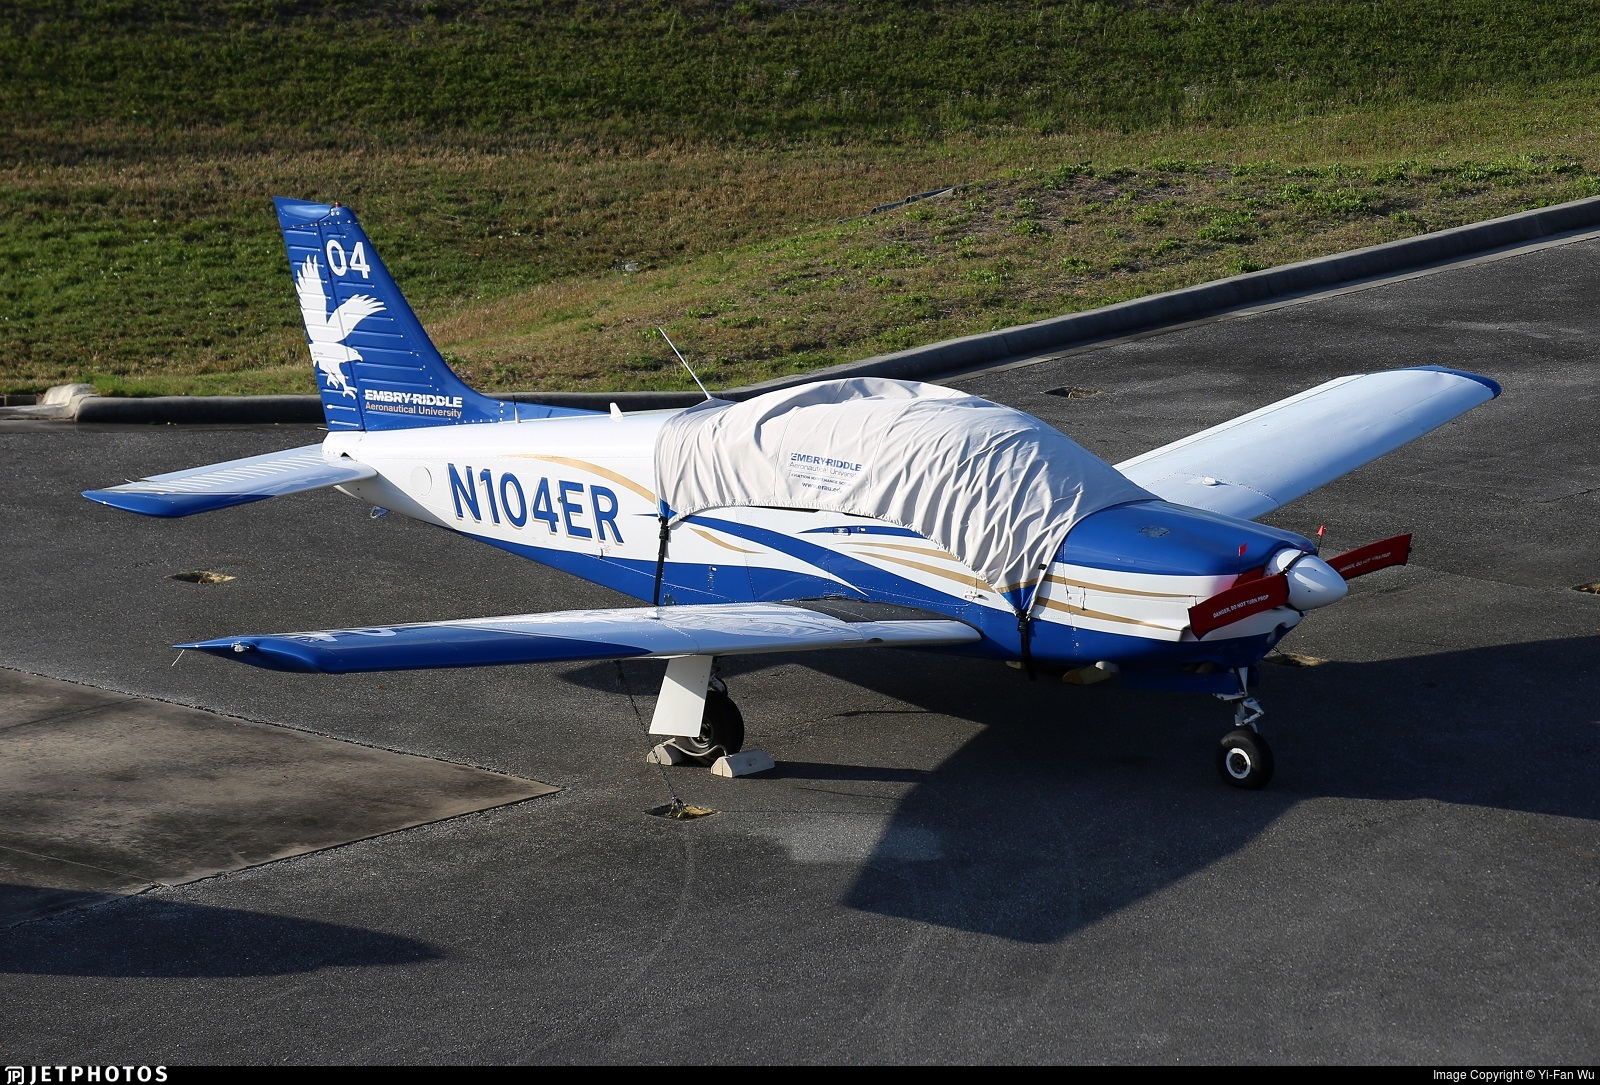 N104ER - Piper PA-28R-201 Arrow - Embry-Riddle Aeronautical University (ERAU)